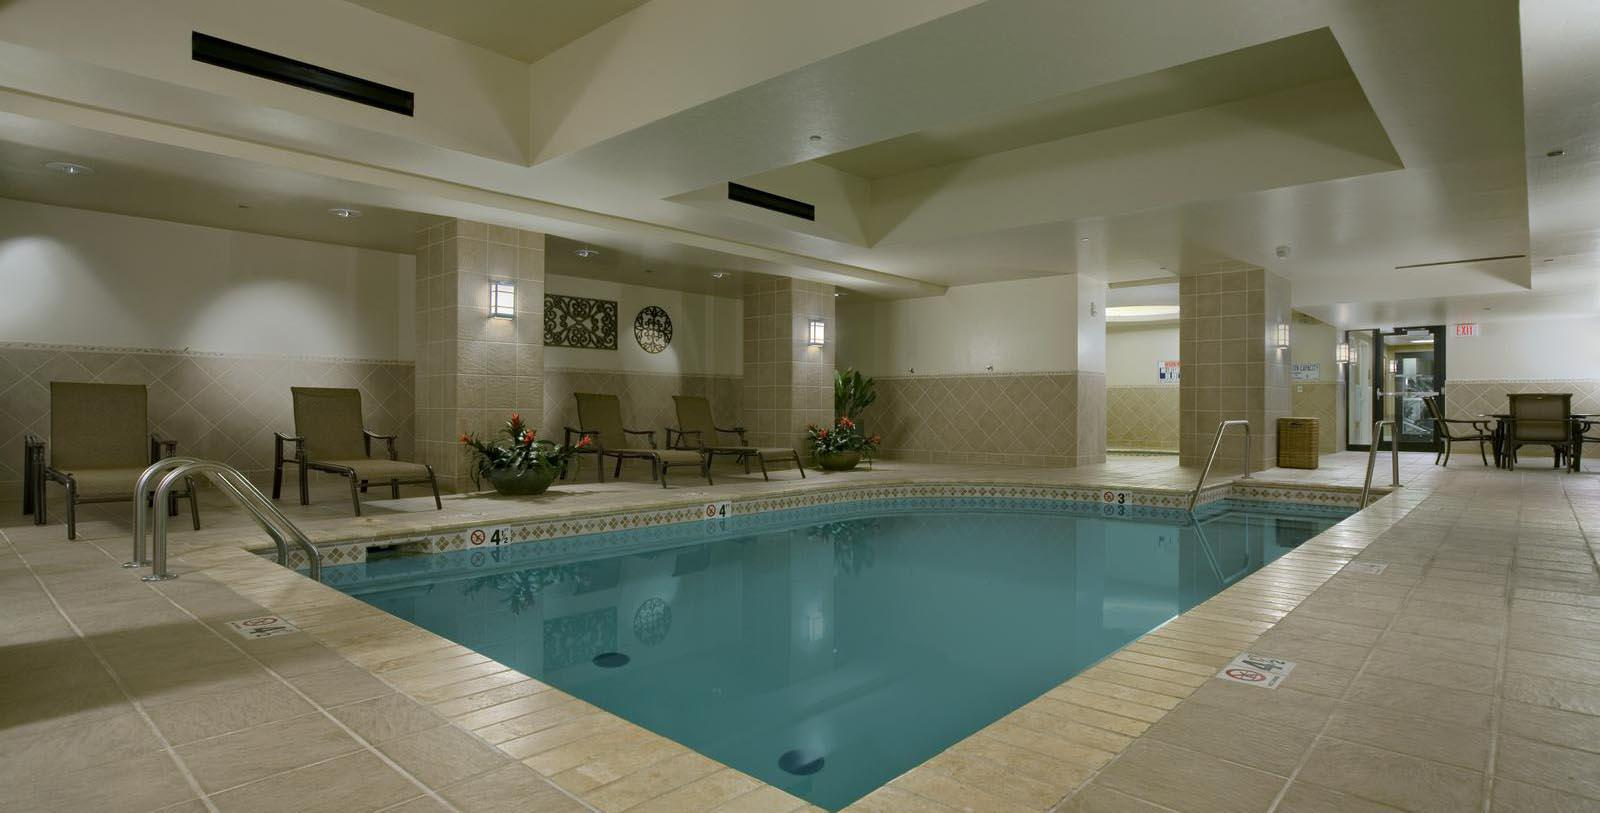 Image of Indoor Pool at The Skirvin Hilton Oklahoma City, 1911, Member of Historic Hotels of America, in Oklahoma City, Oklahoma, Explore